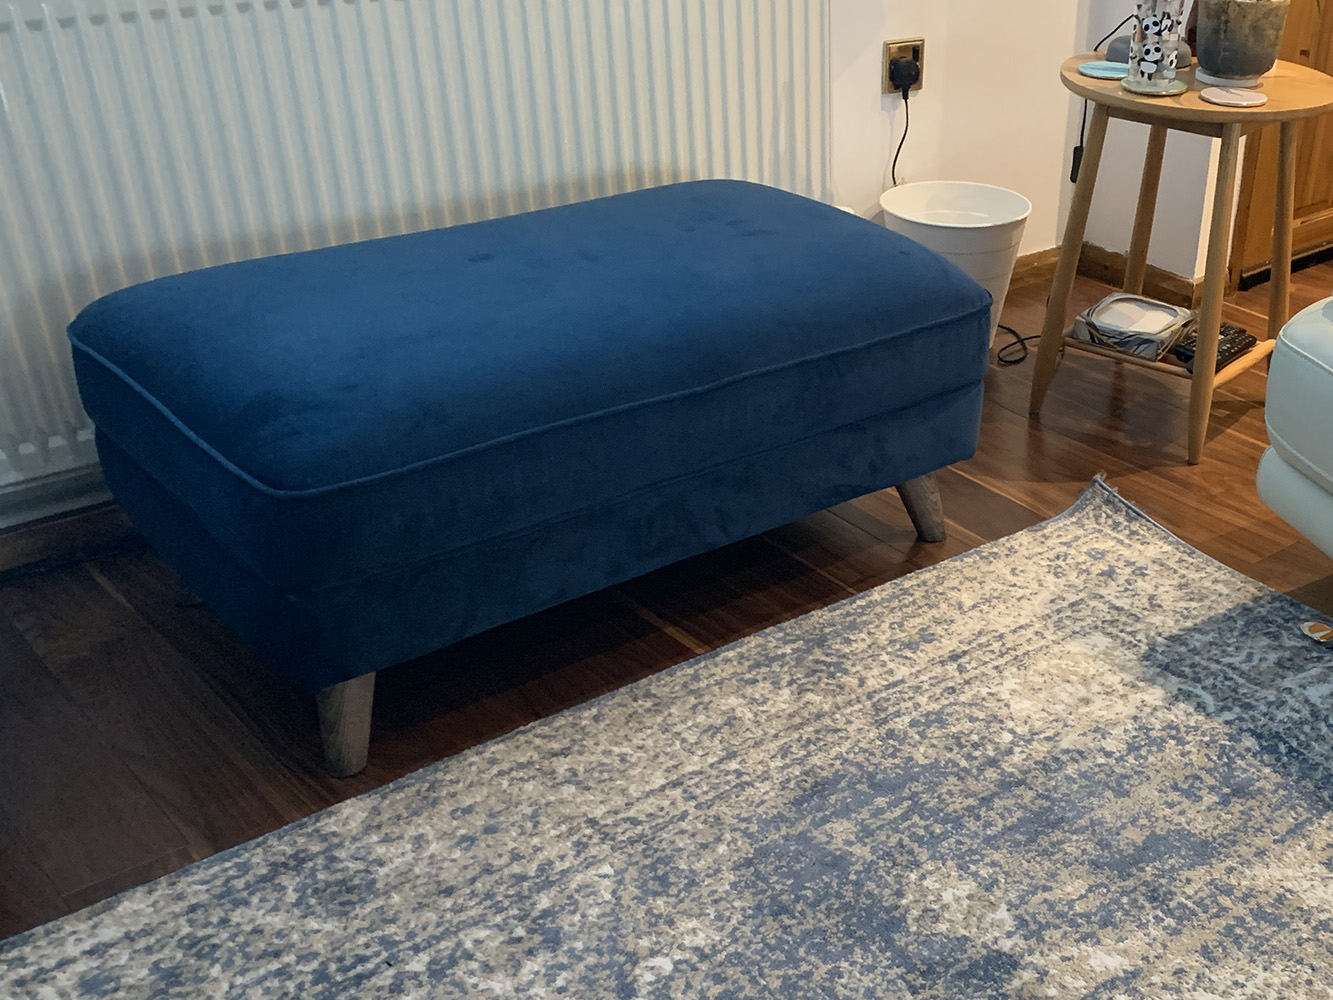 Blue Magnus footstool from Lucie